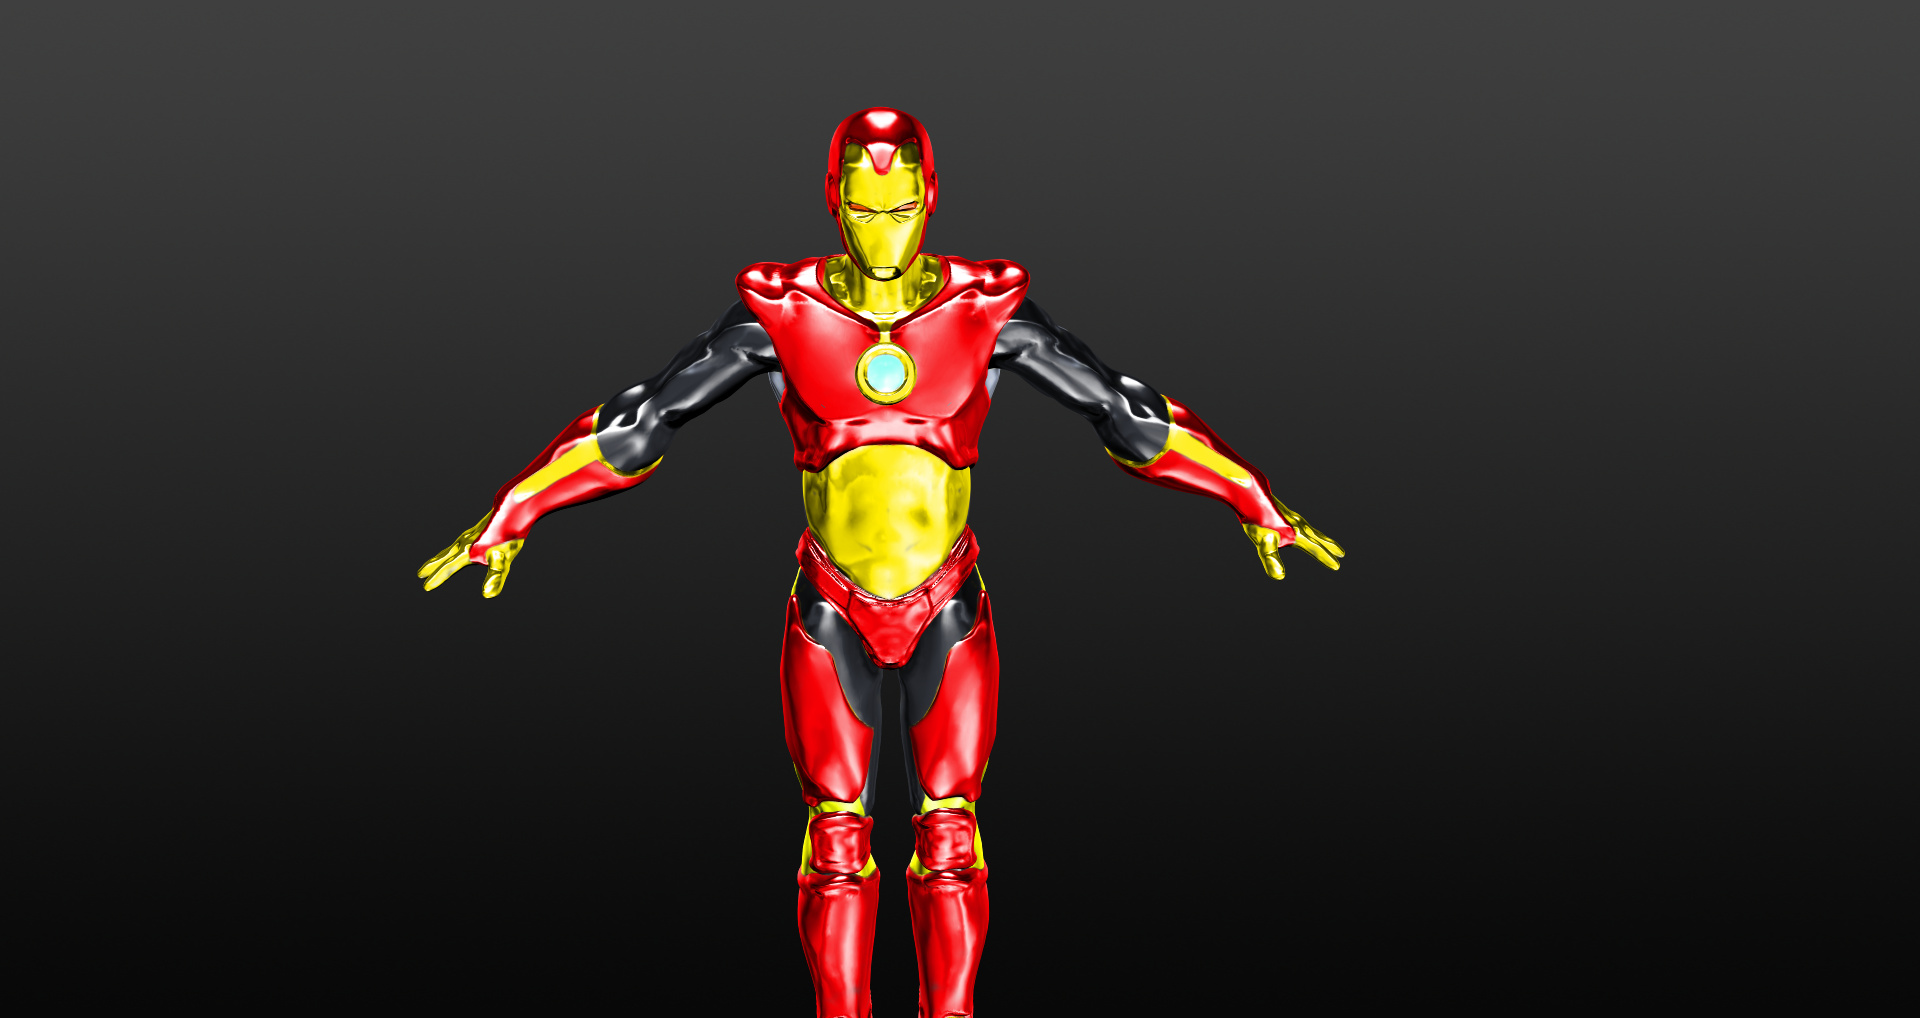 Ironman_Prova24_color3_front_big01